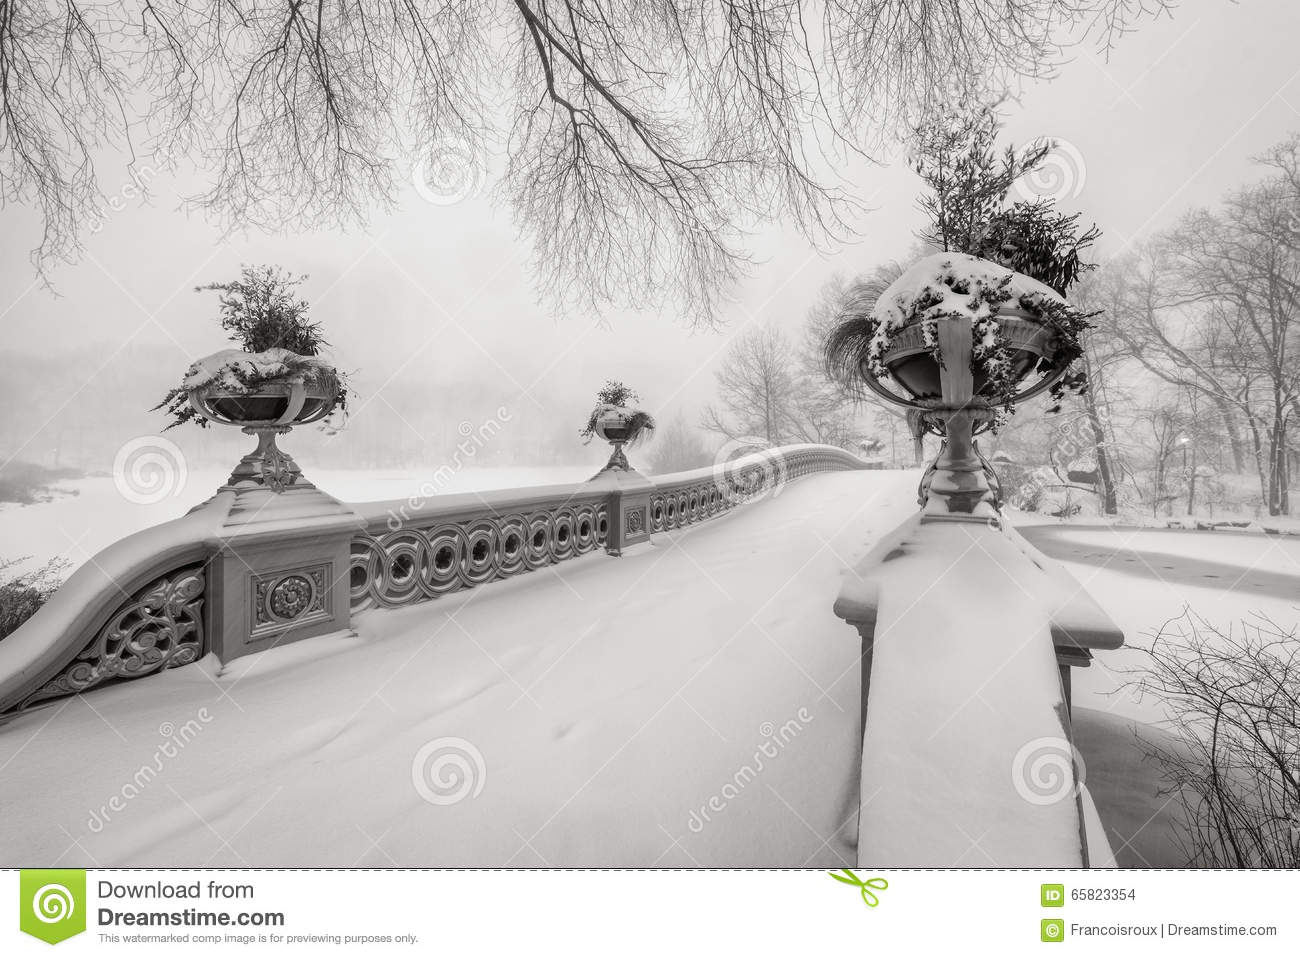 Stocks Download Shivam Creation: Blizzard In Central Park. Bow Bridge Covered In Snow, NYC